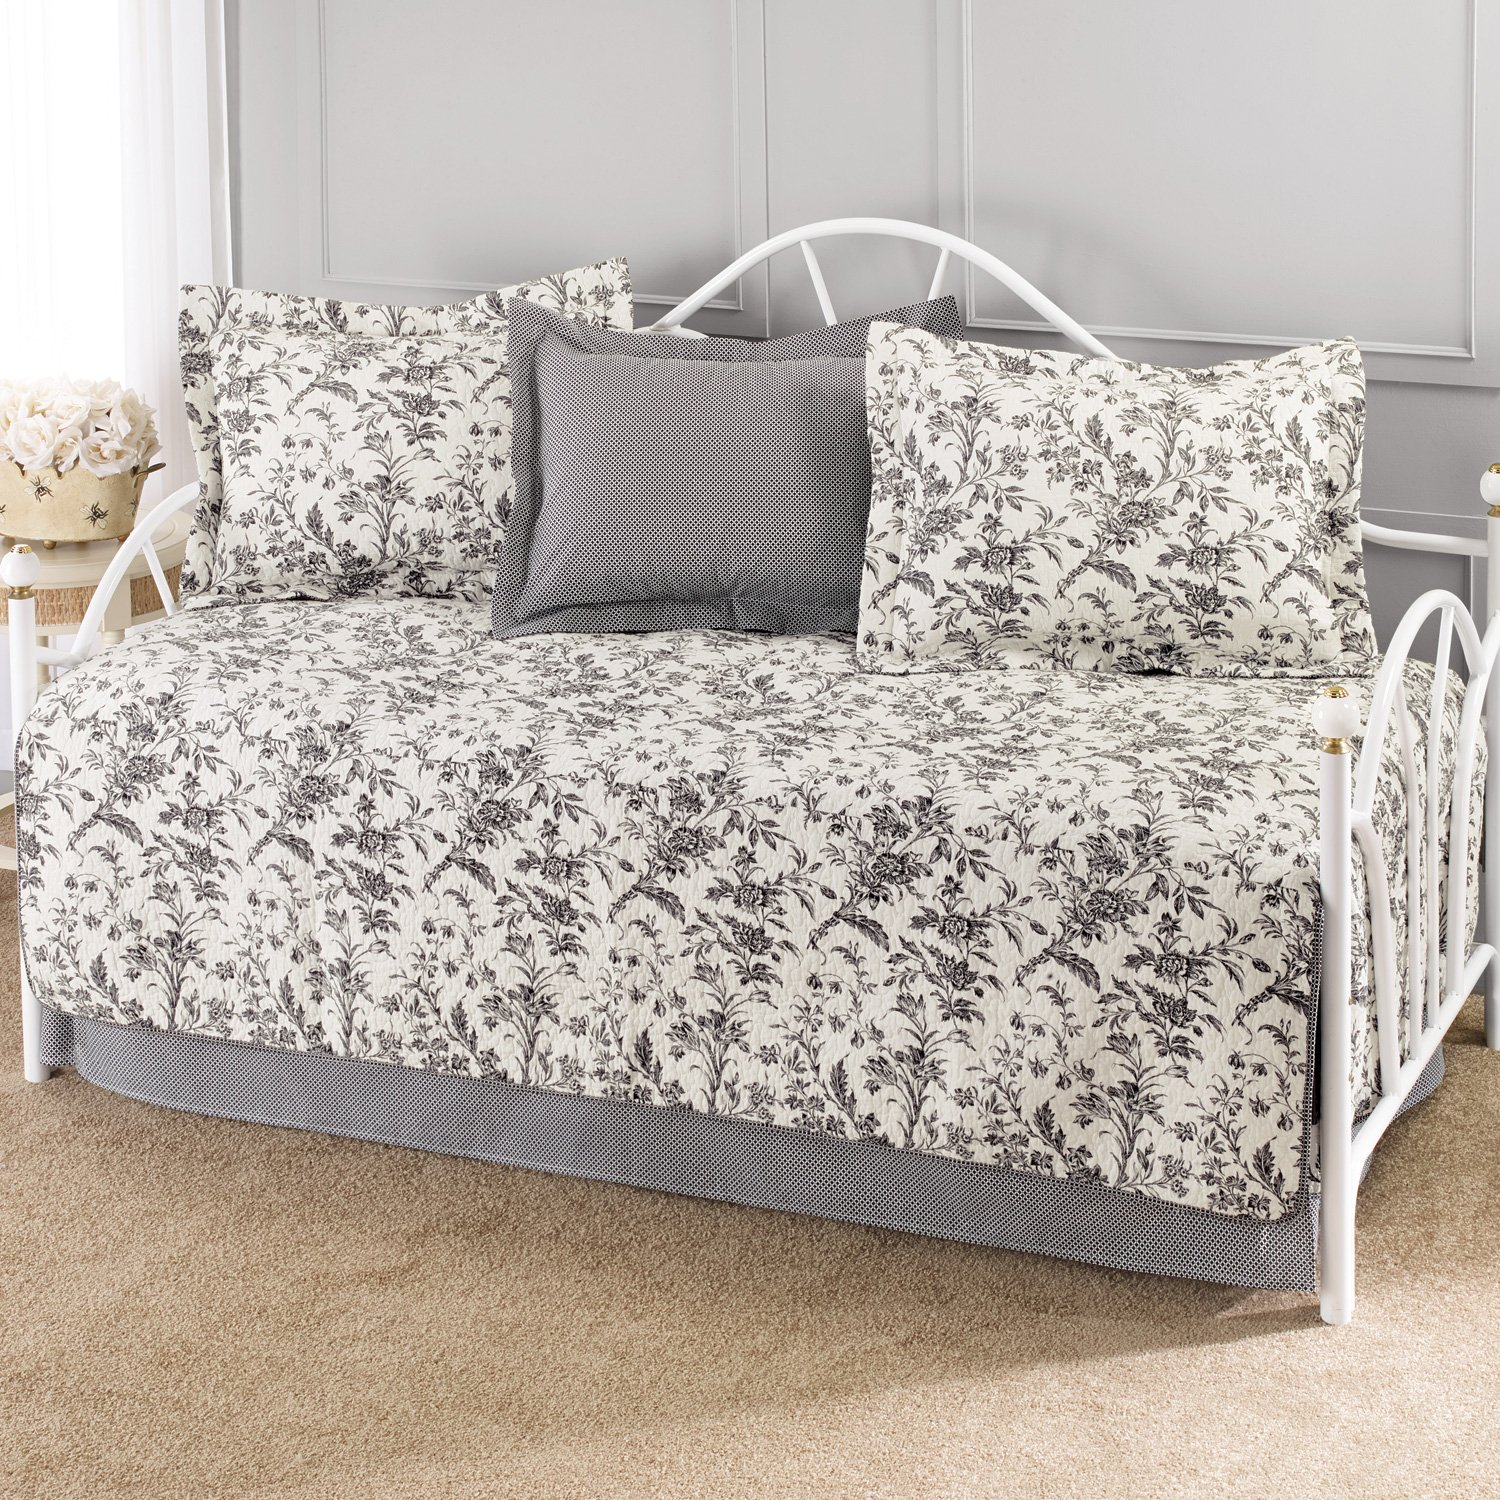 Amazon.com: Laura Ashley Amberley 5-Piece Cotton Daybed/Quilt Set ...